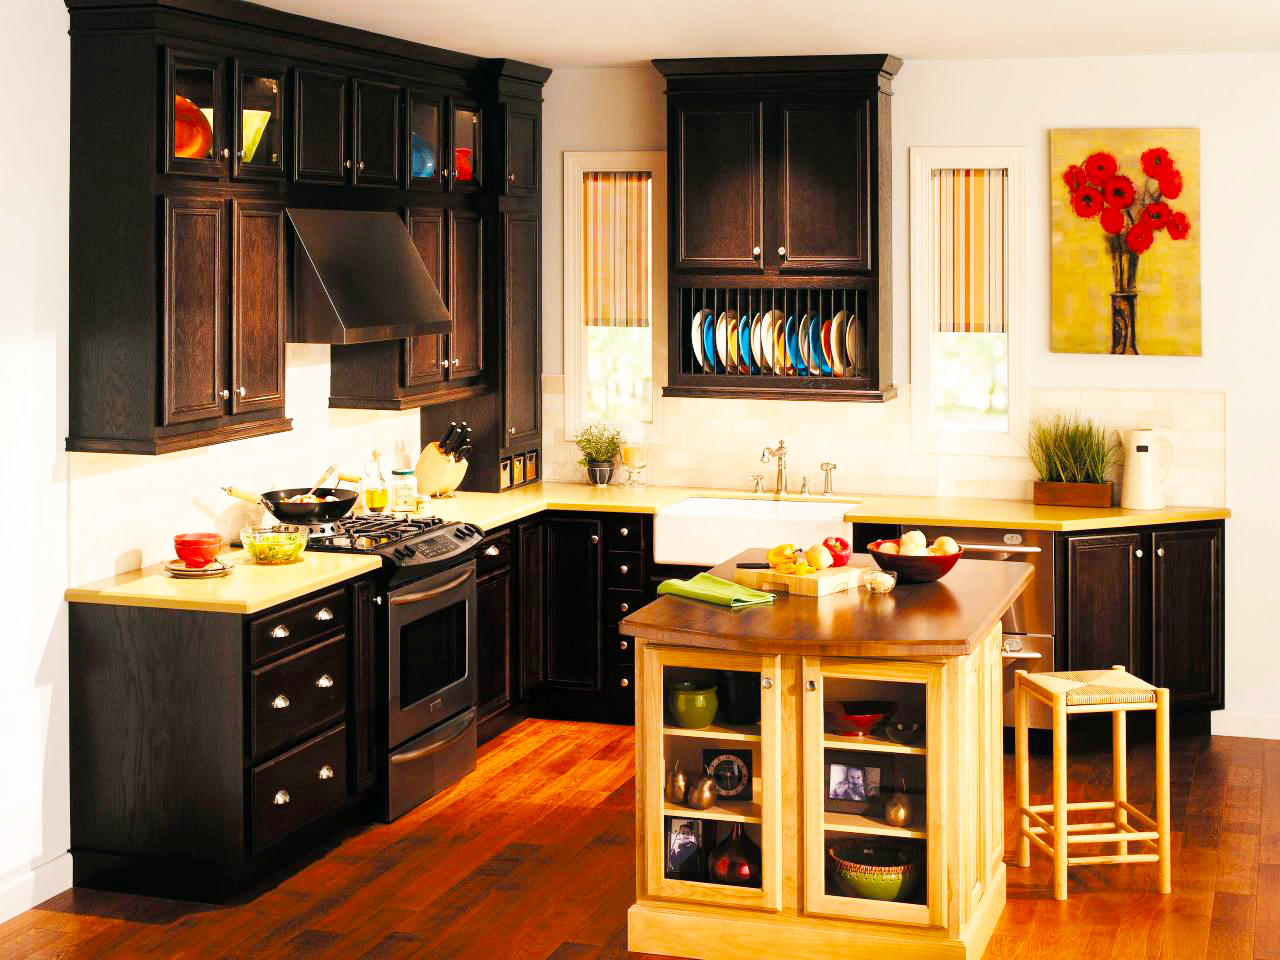 black-kitchen-cabinets-in-black-painting-kitchen-cabinets-refacing-with-granite-coutertops-also-wood-kitchen-island-ideas-and-single-sink-high-end-kitchen-cabinets